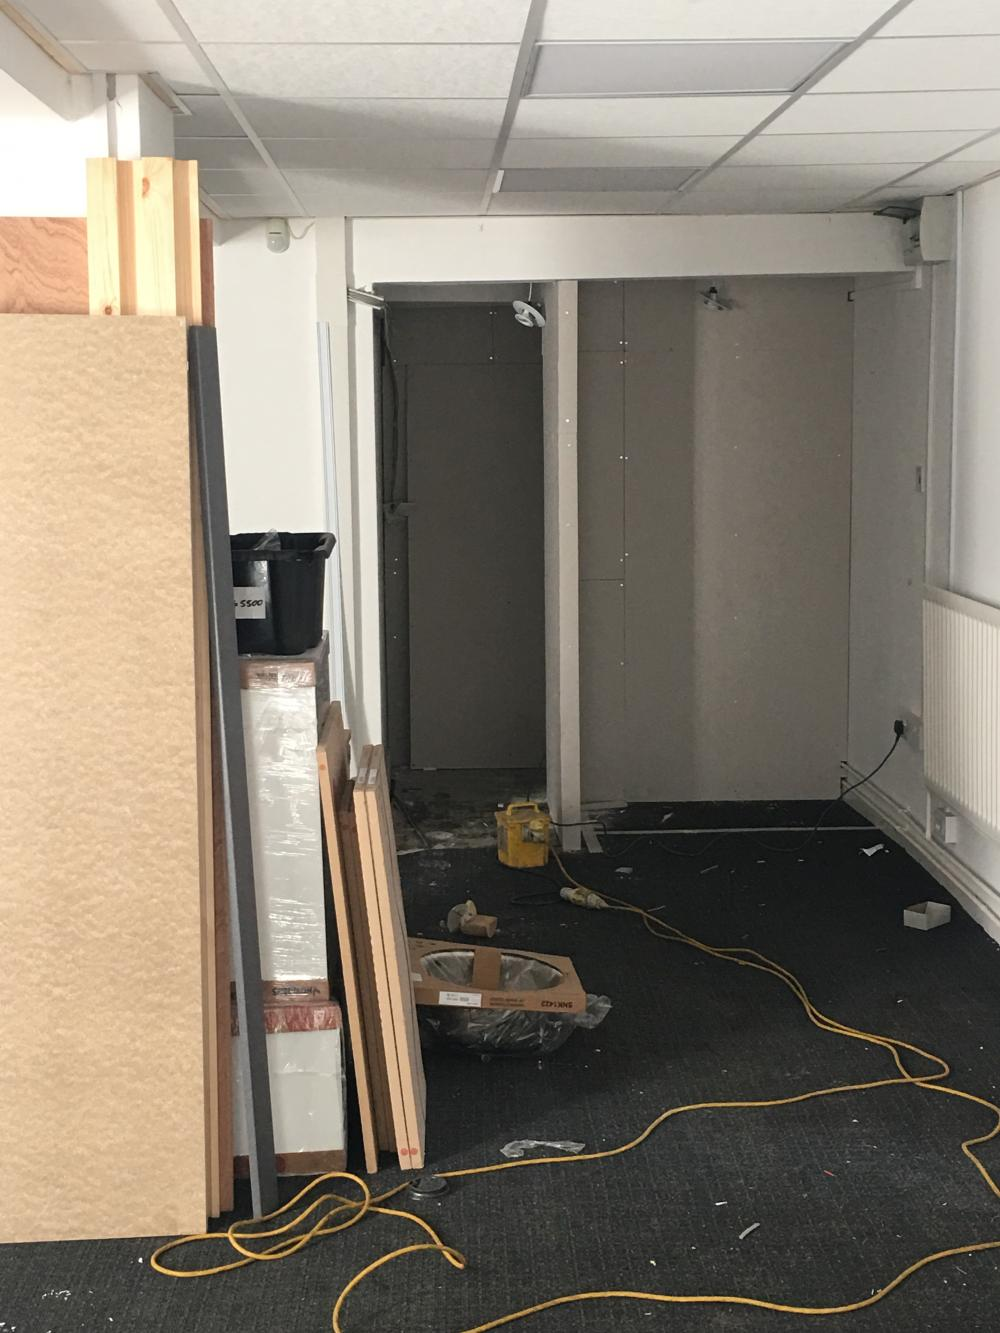 Unit 7 having toilet and kitchen installed